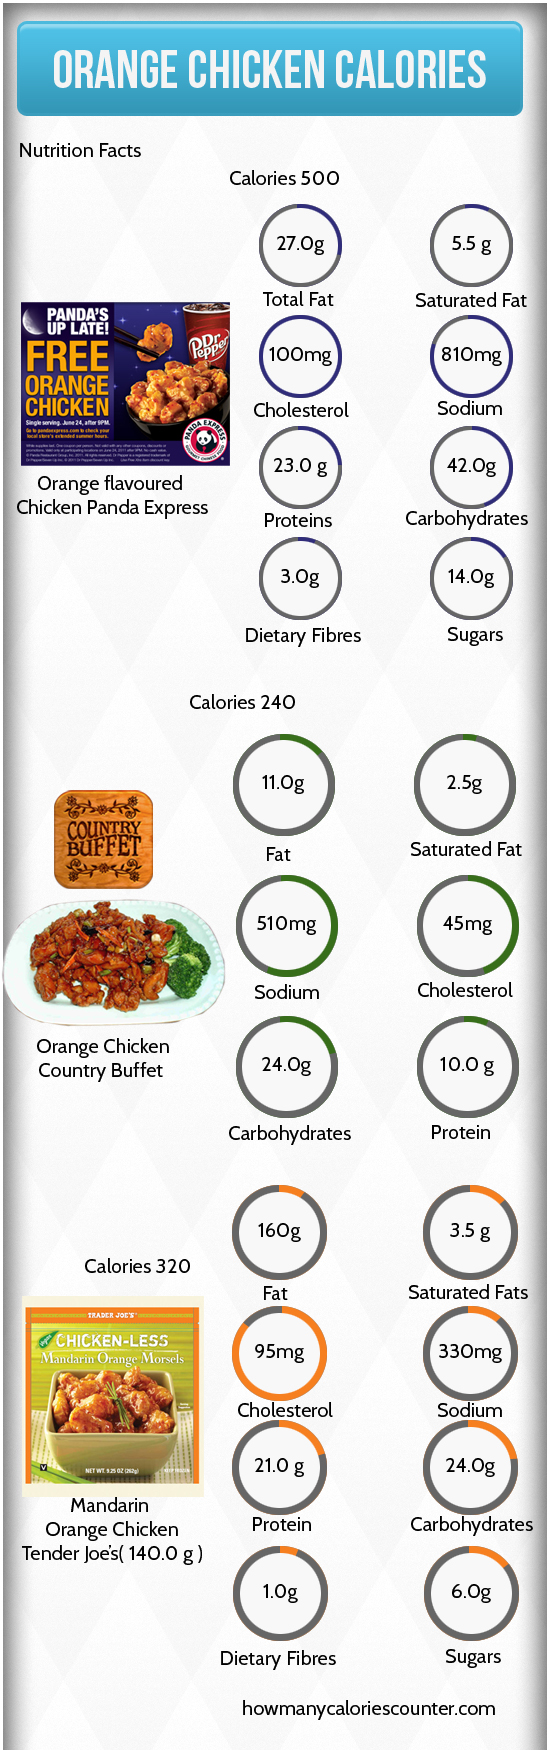 Calories in Orange Chicken